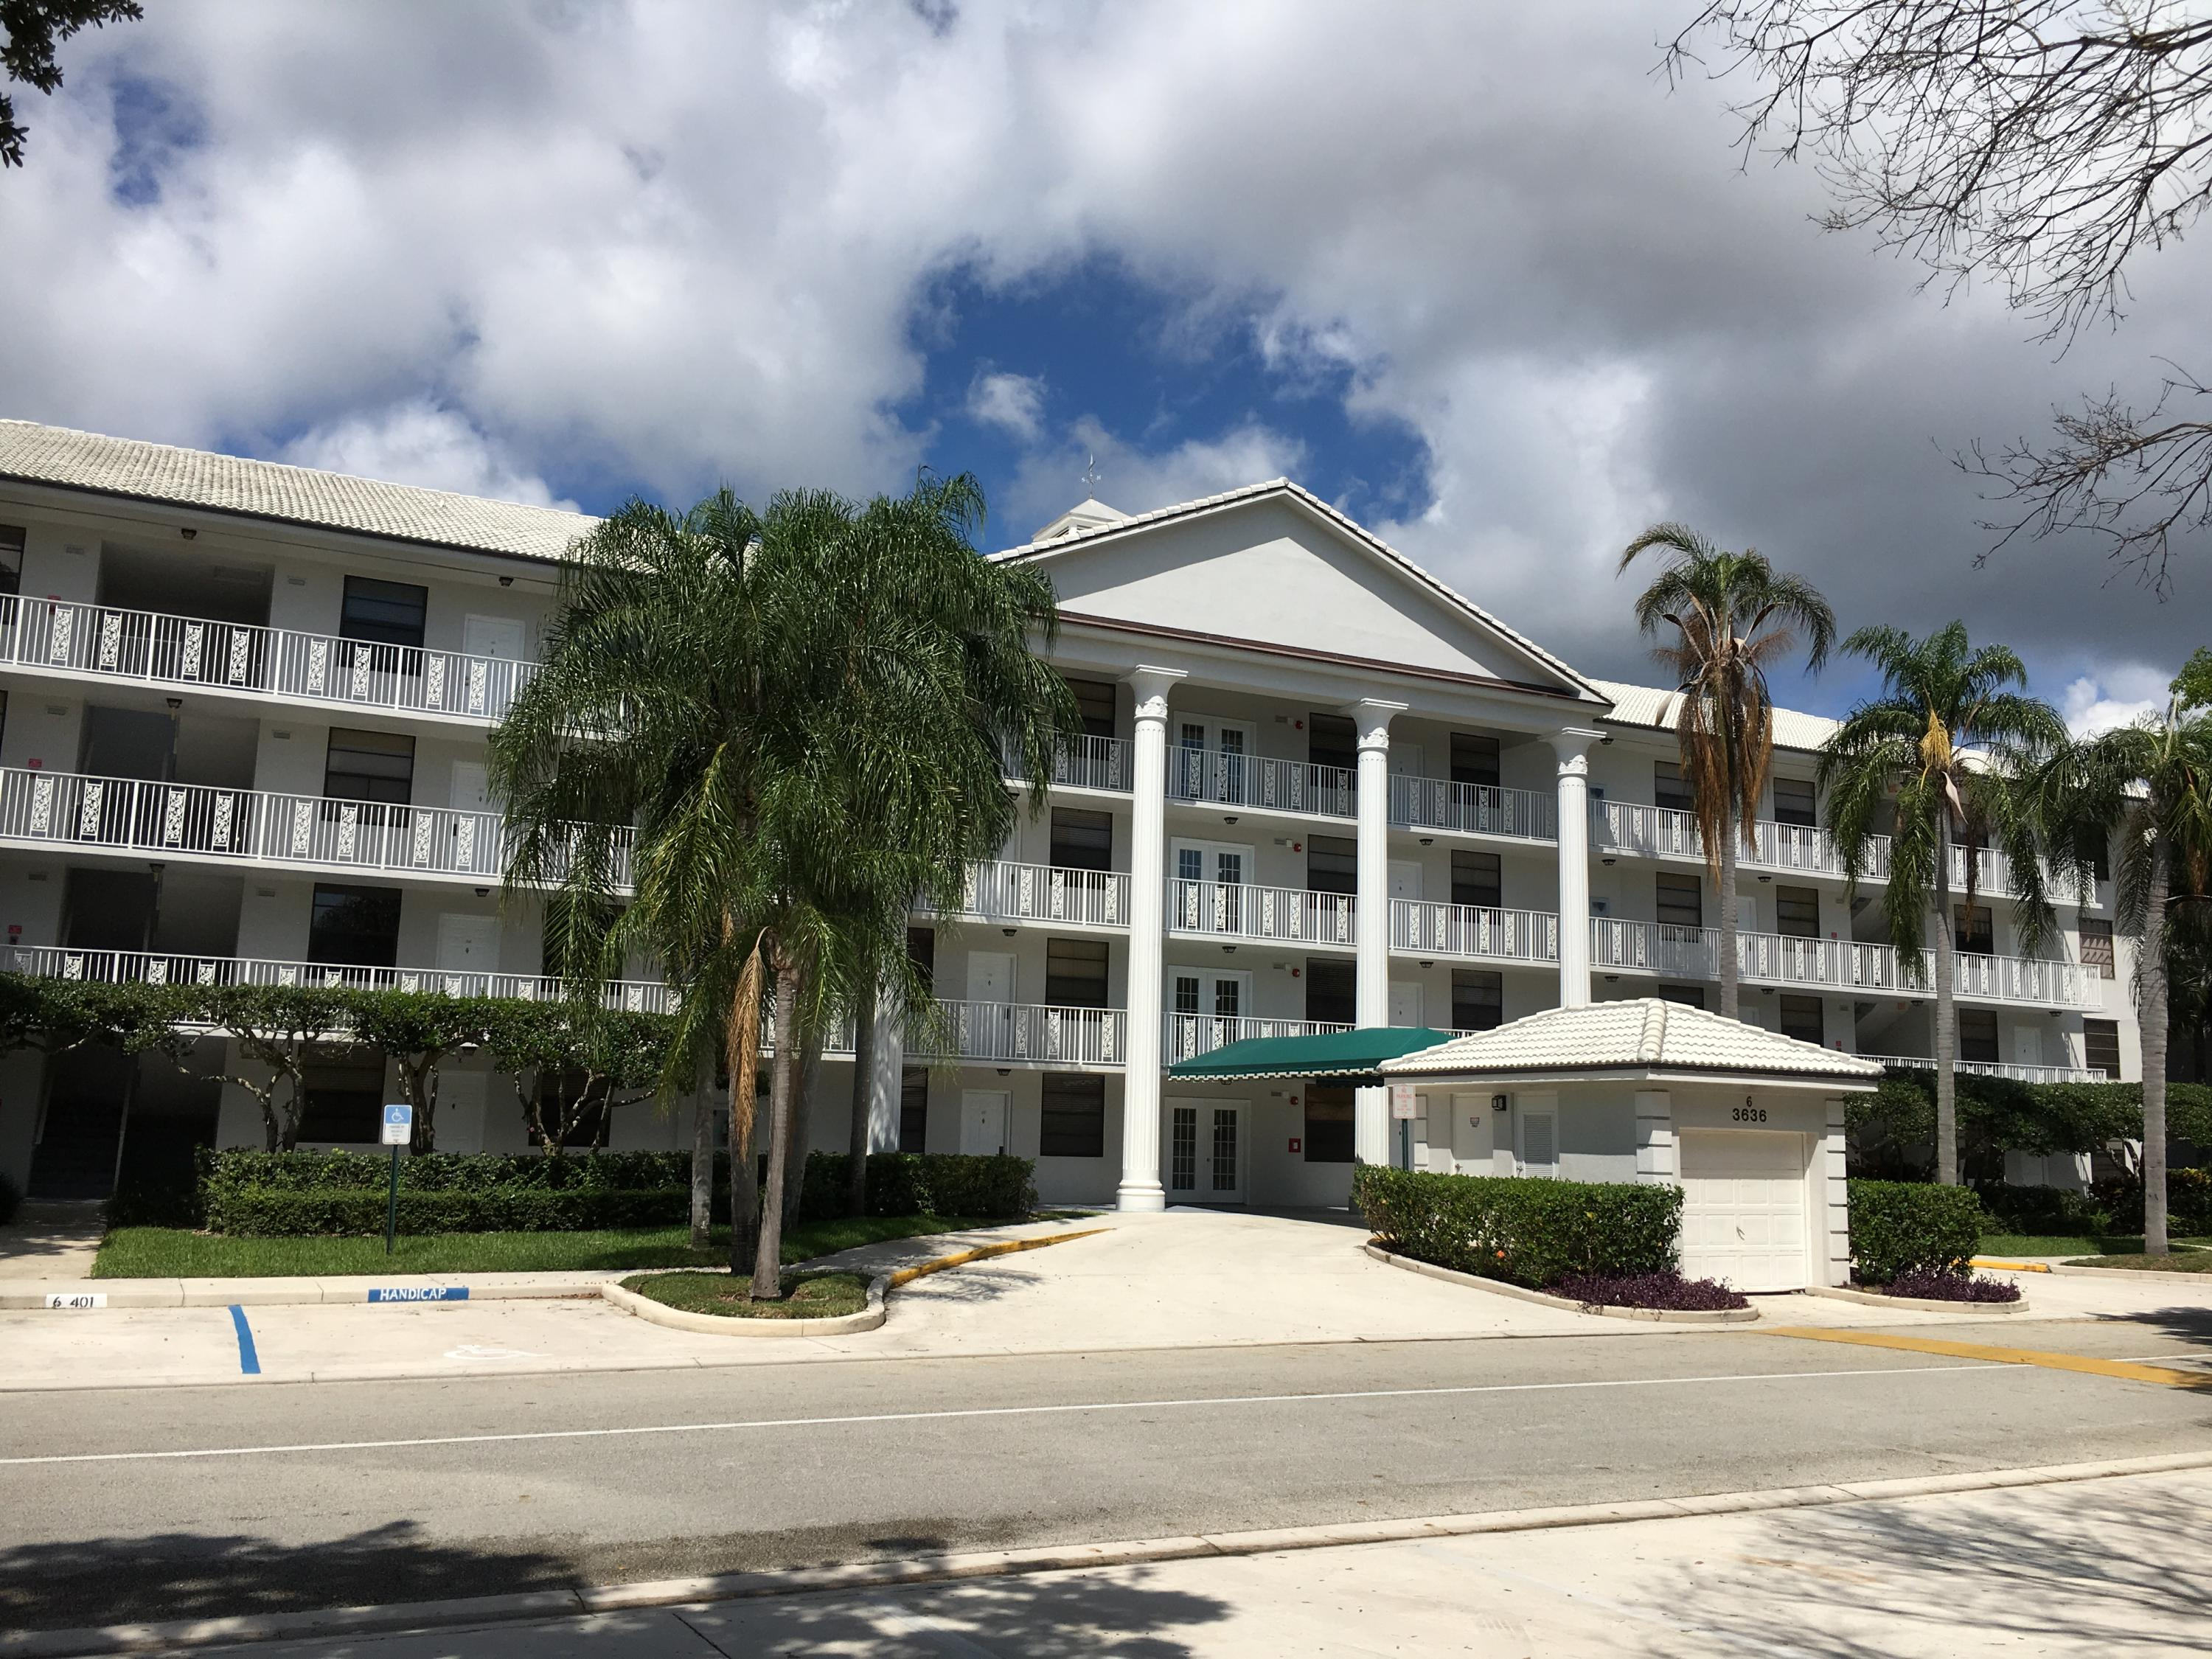 3626  Whitehall Drive 305 For Sale 10688920, FL